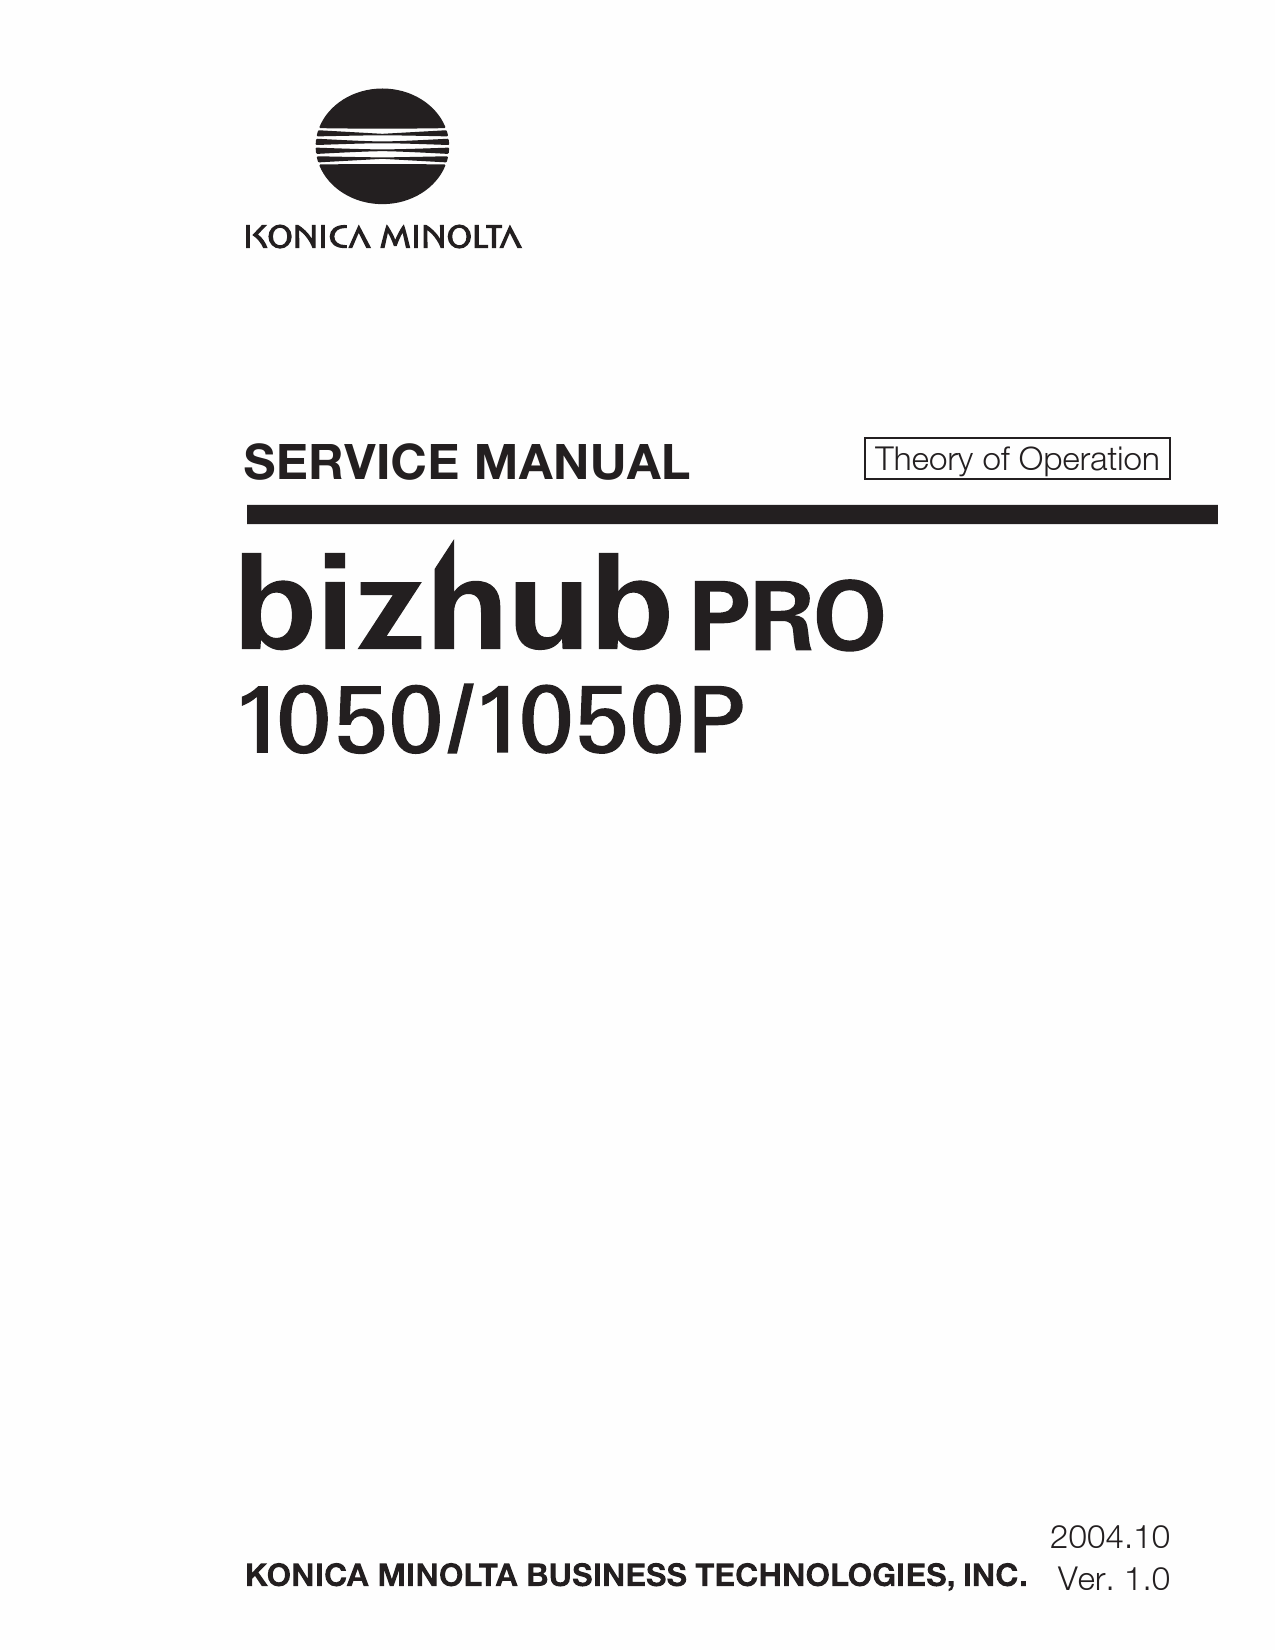 Konica-Minolta bizhub-PRO 1050 1050P THEORY-OPERATION Service Manual-1